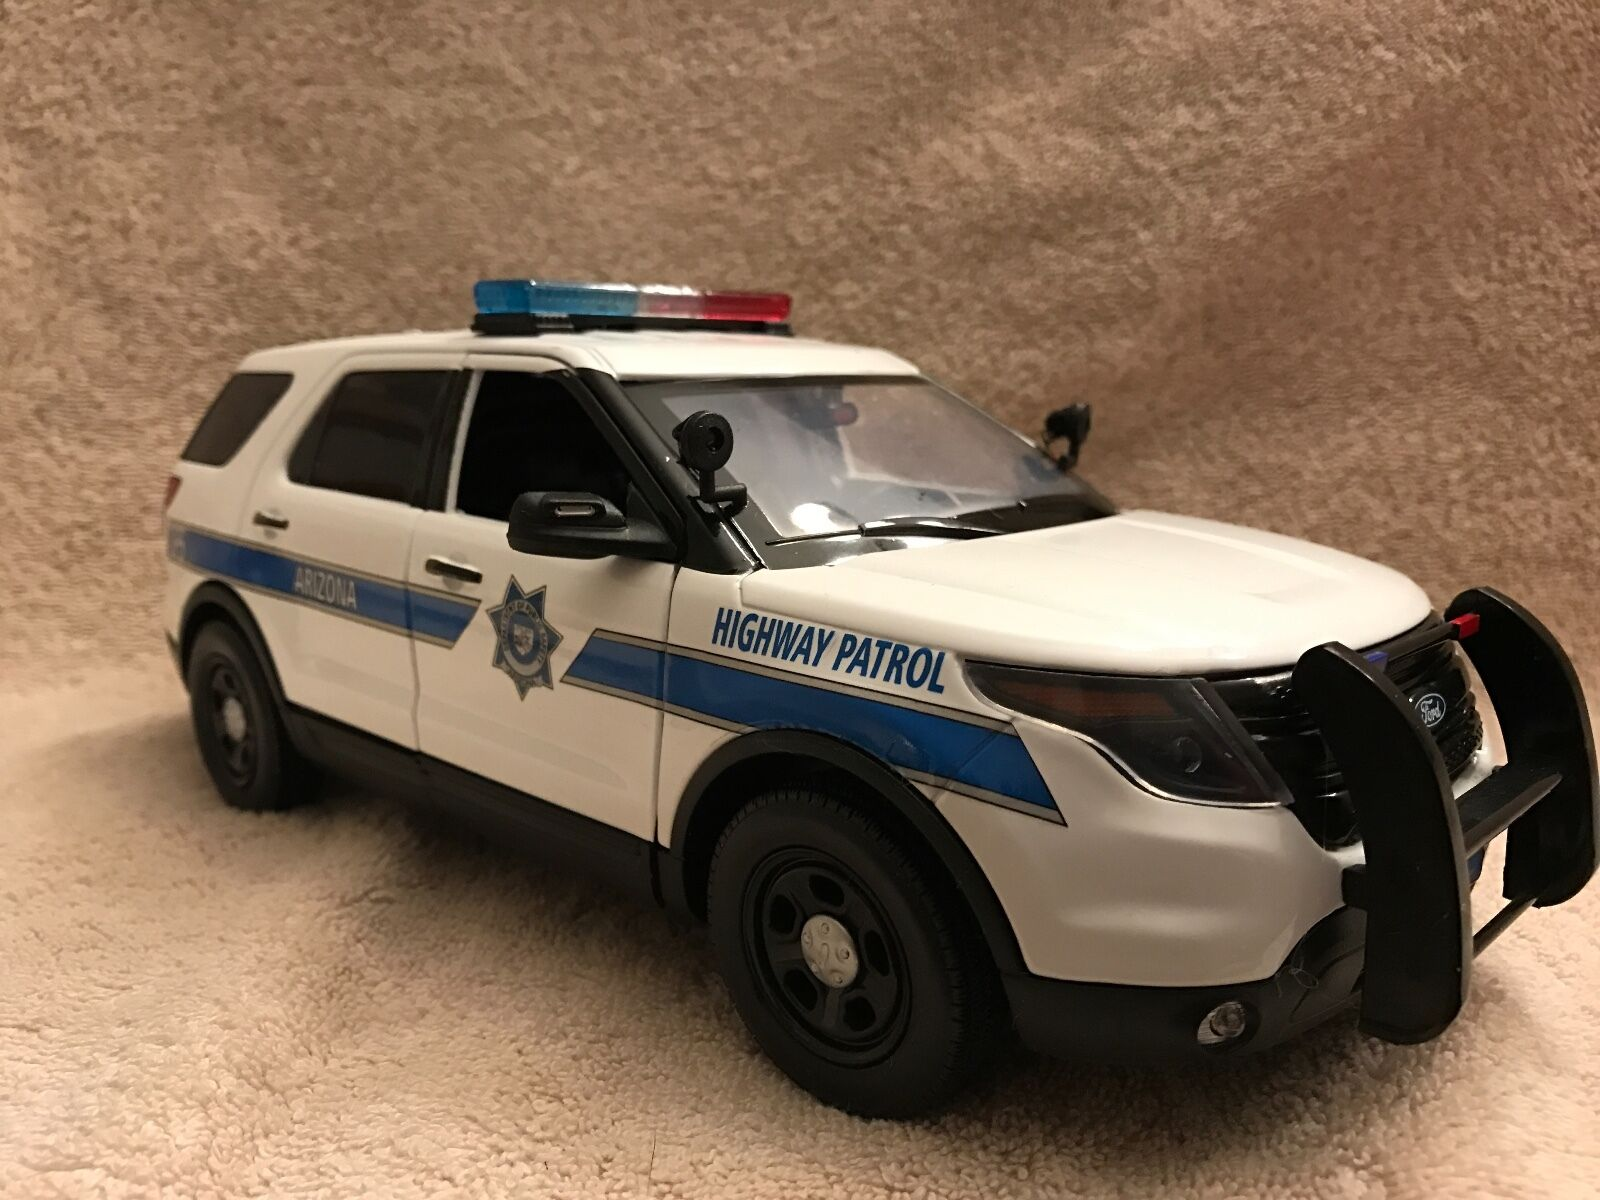 Échelle 1 18 Arizona DPS Hwy Patrol FD PD vus UT Diecast with Working Lights Sirène